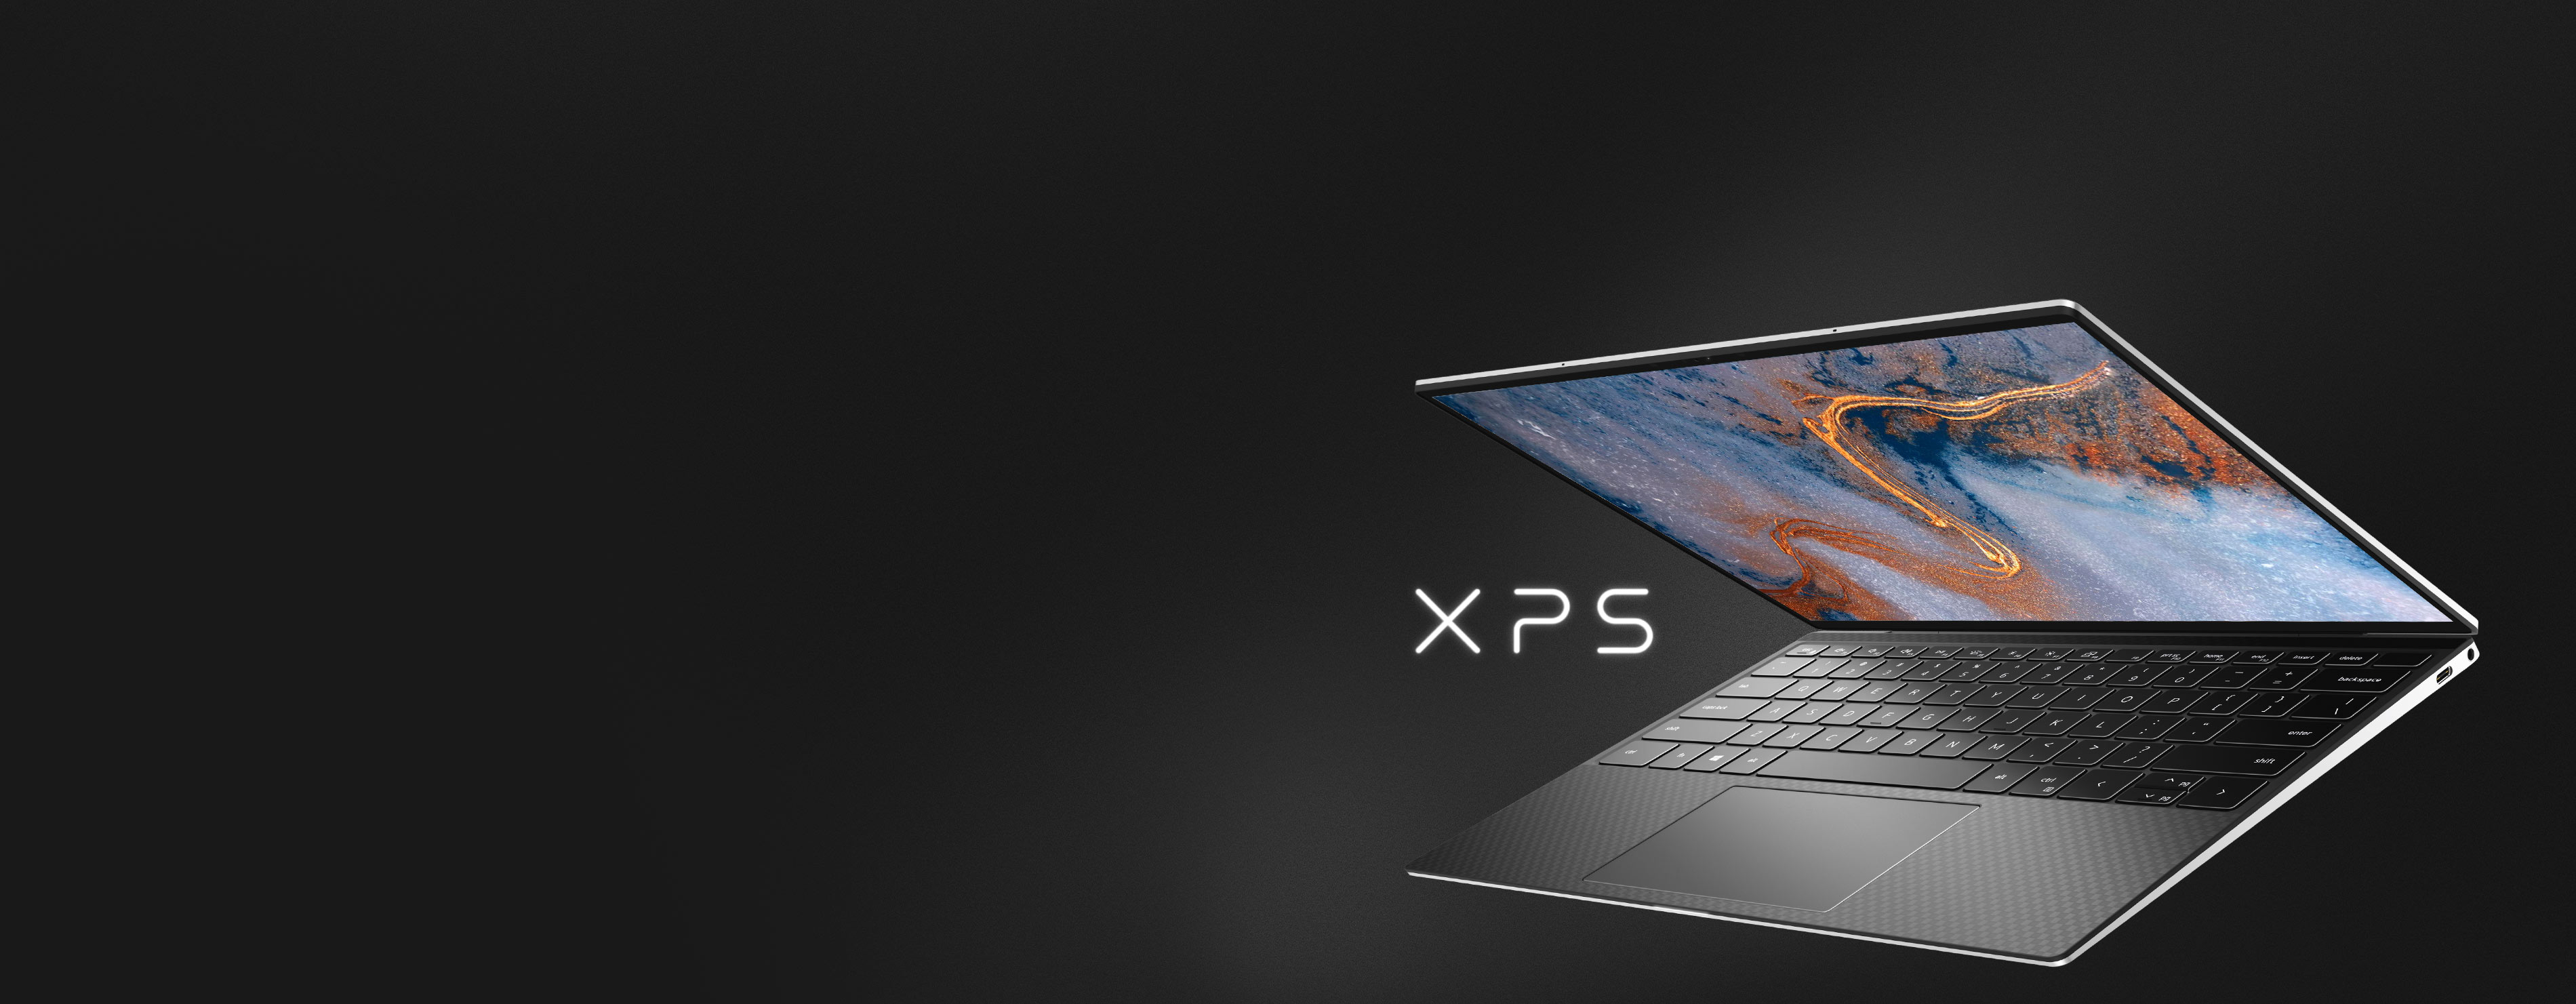 XPS_Laptops